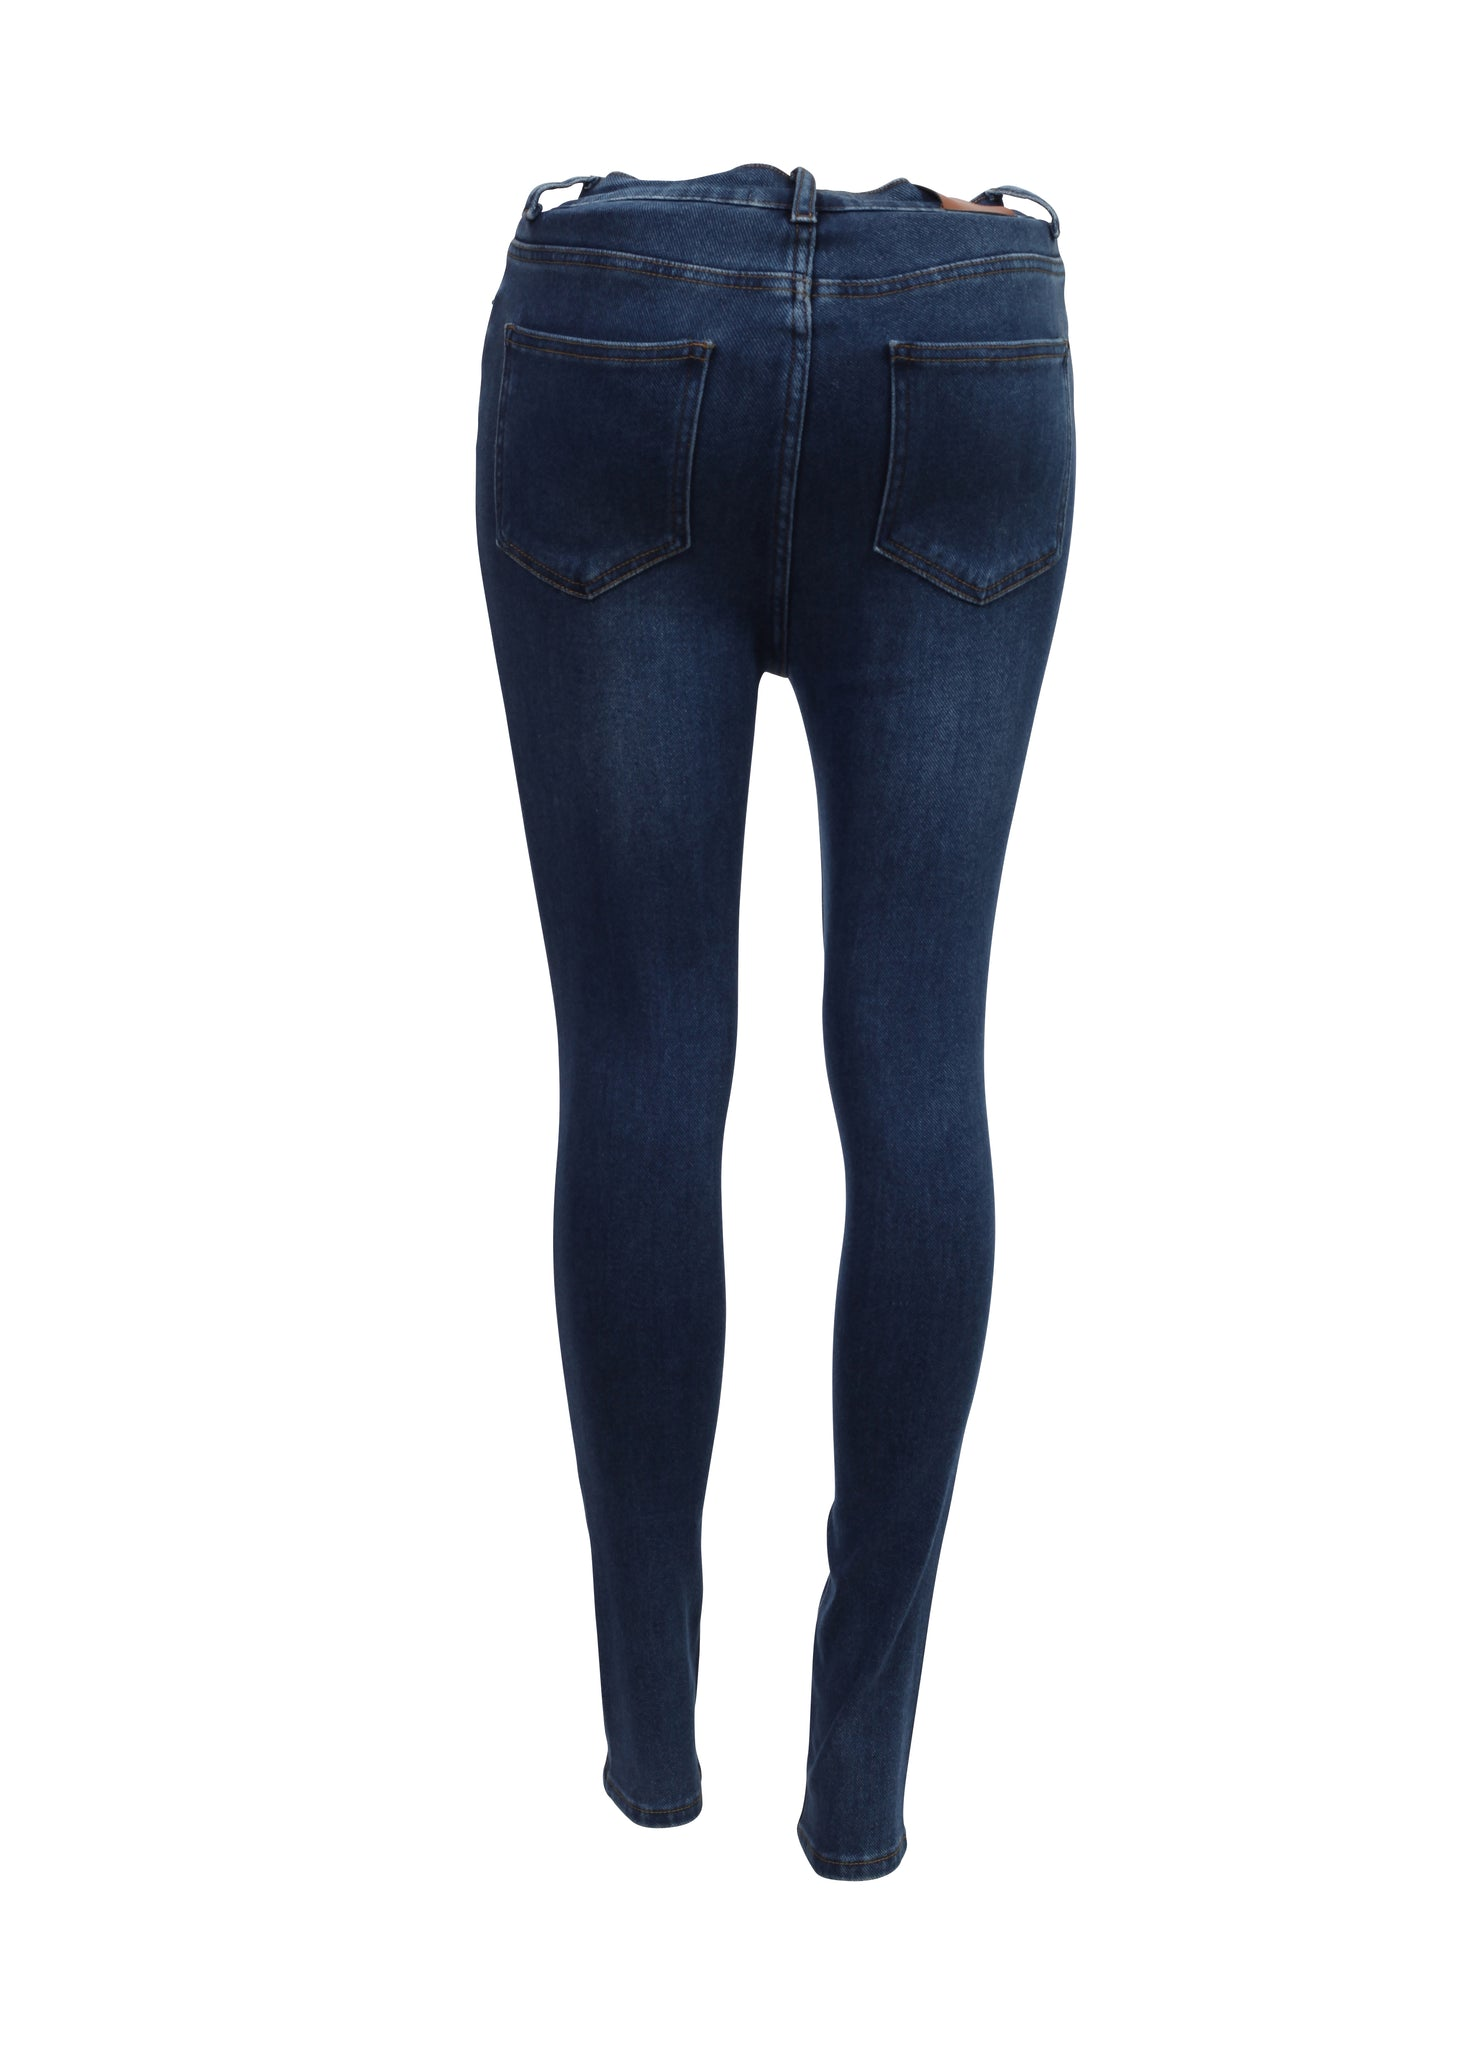 Rear view of double buttoned High Waisted Skinny Jeans Womens